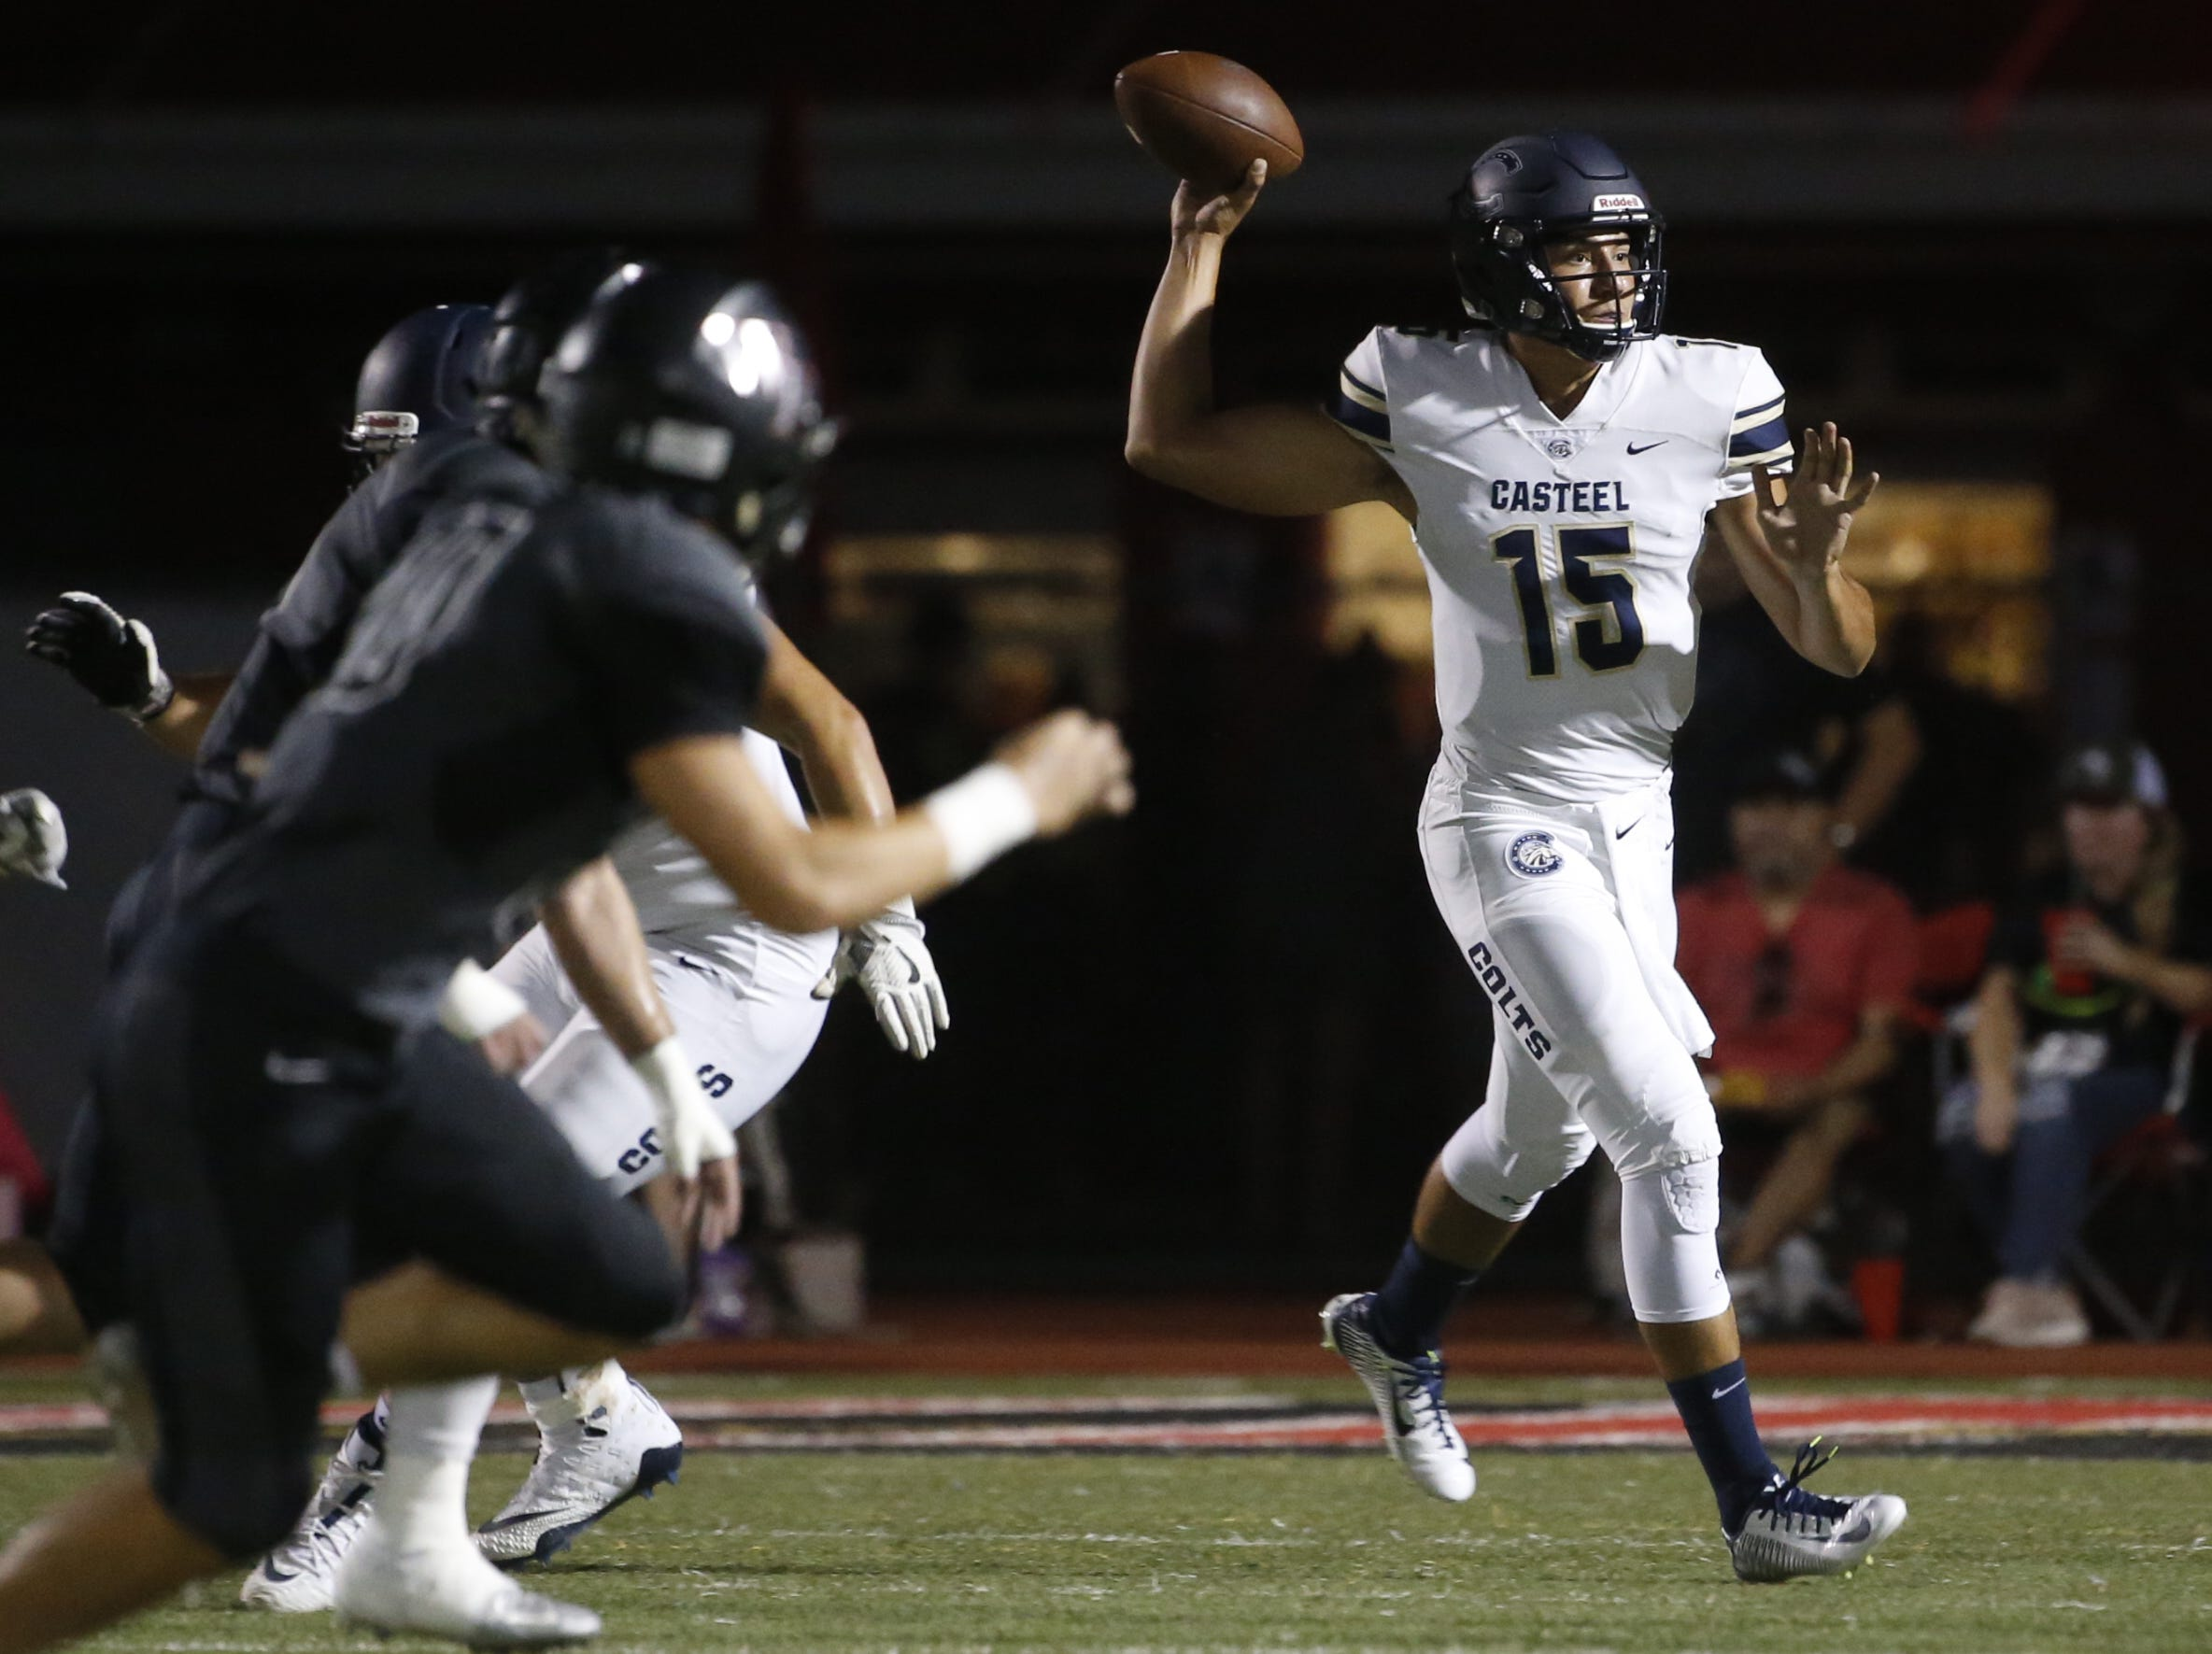 Casteel's Gunner Cruz (15) throws a pass under pressure from Williams Field's Nick Hernandez (80) at Williams Field High School in Gilbert, Ariz. on Sept. 21, 2018.  #azhsfb